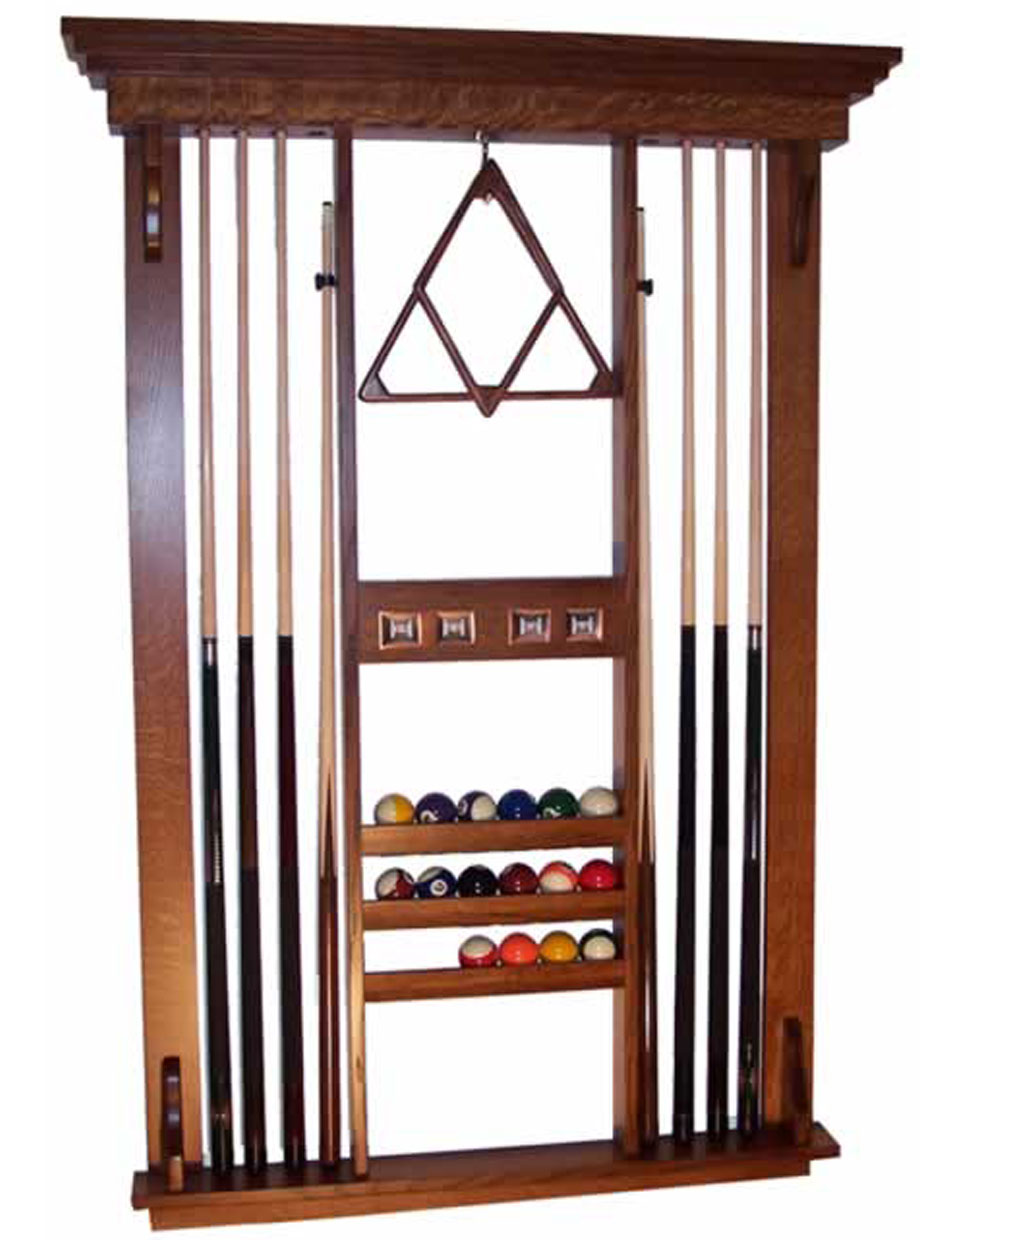 Deluxe pool table accessories wall rack amish direct furniture - Billiard table accessories ...